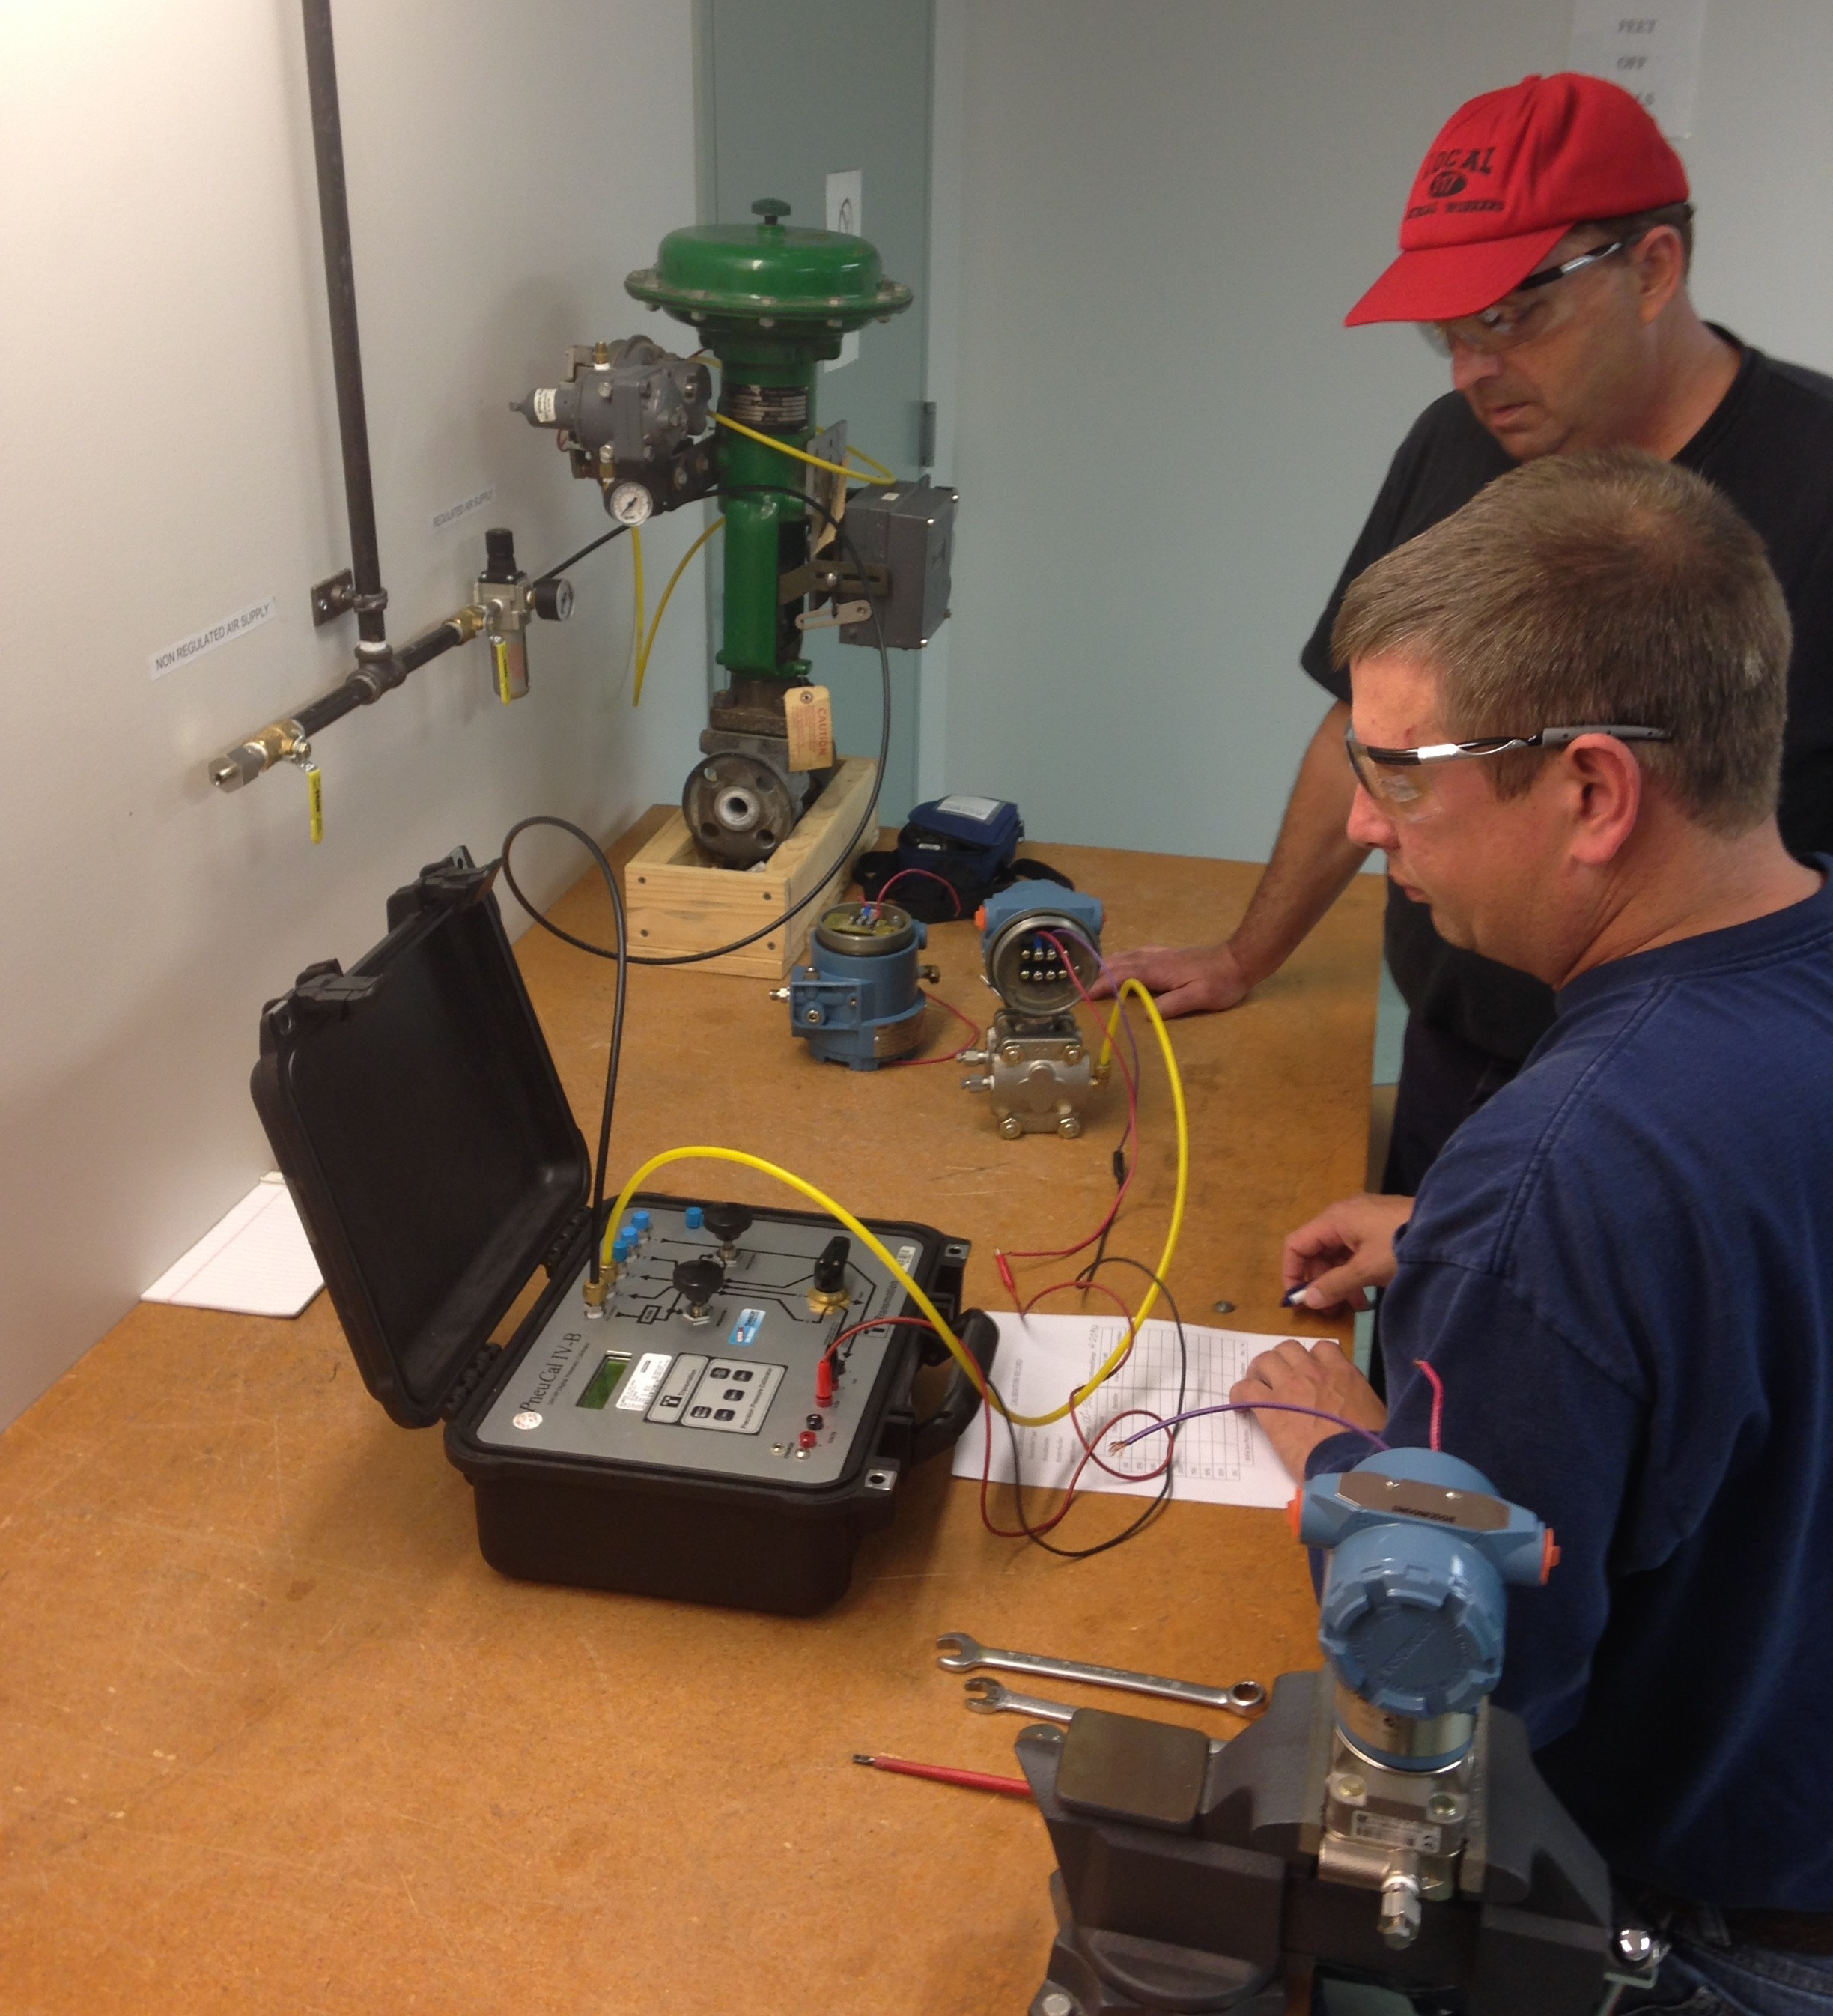 Apprentices being trained at the NECA/IBEW Electrical JATC. Applicants can expect similar training.